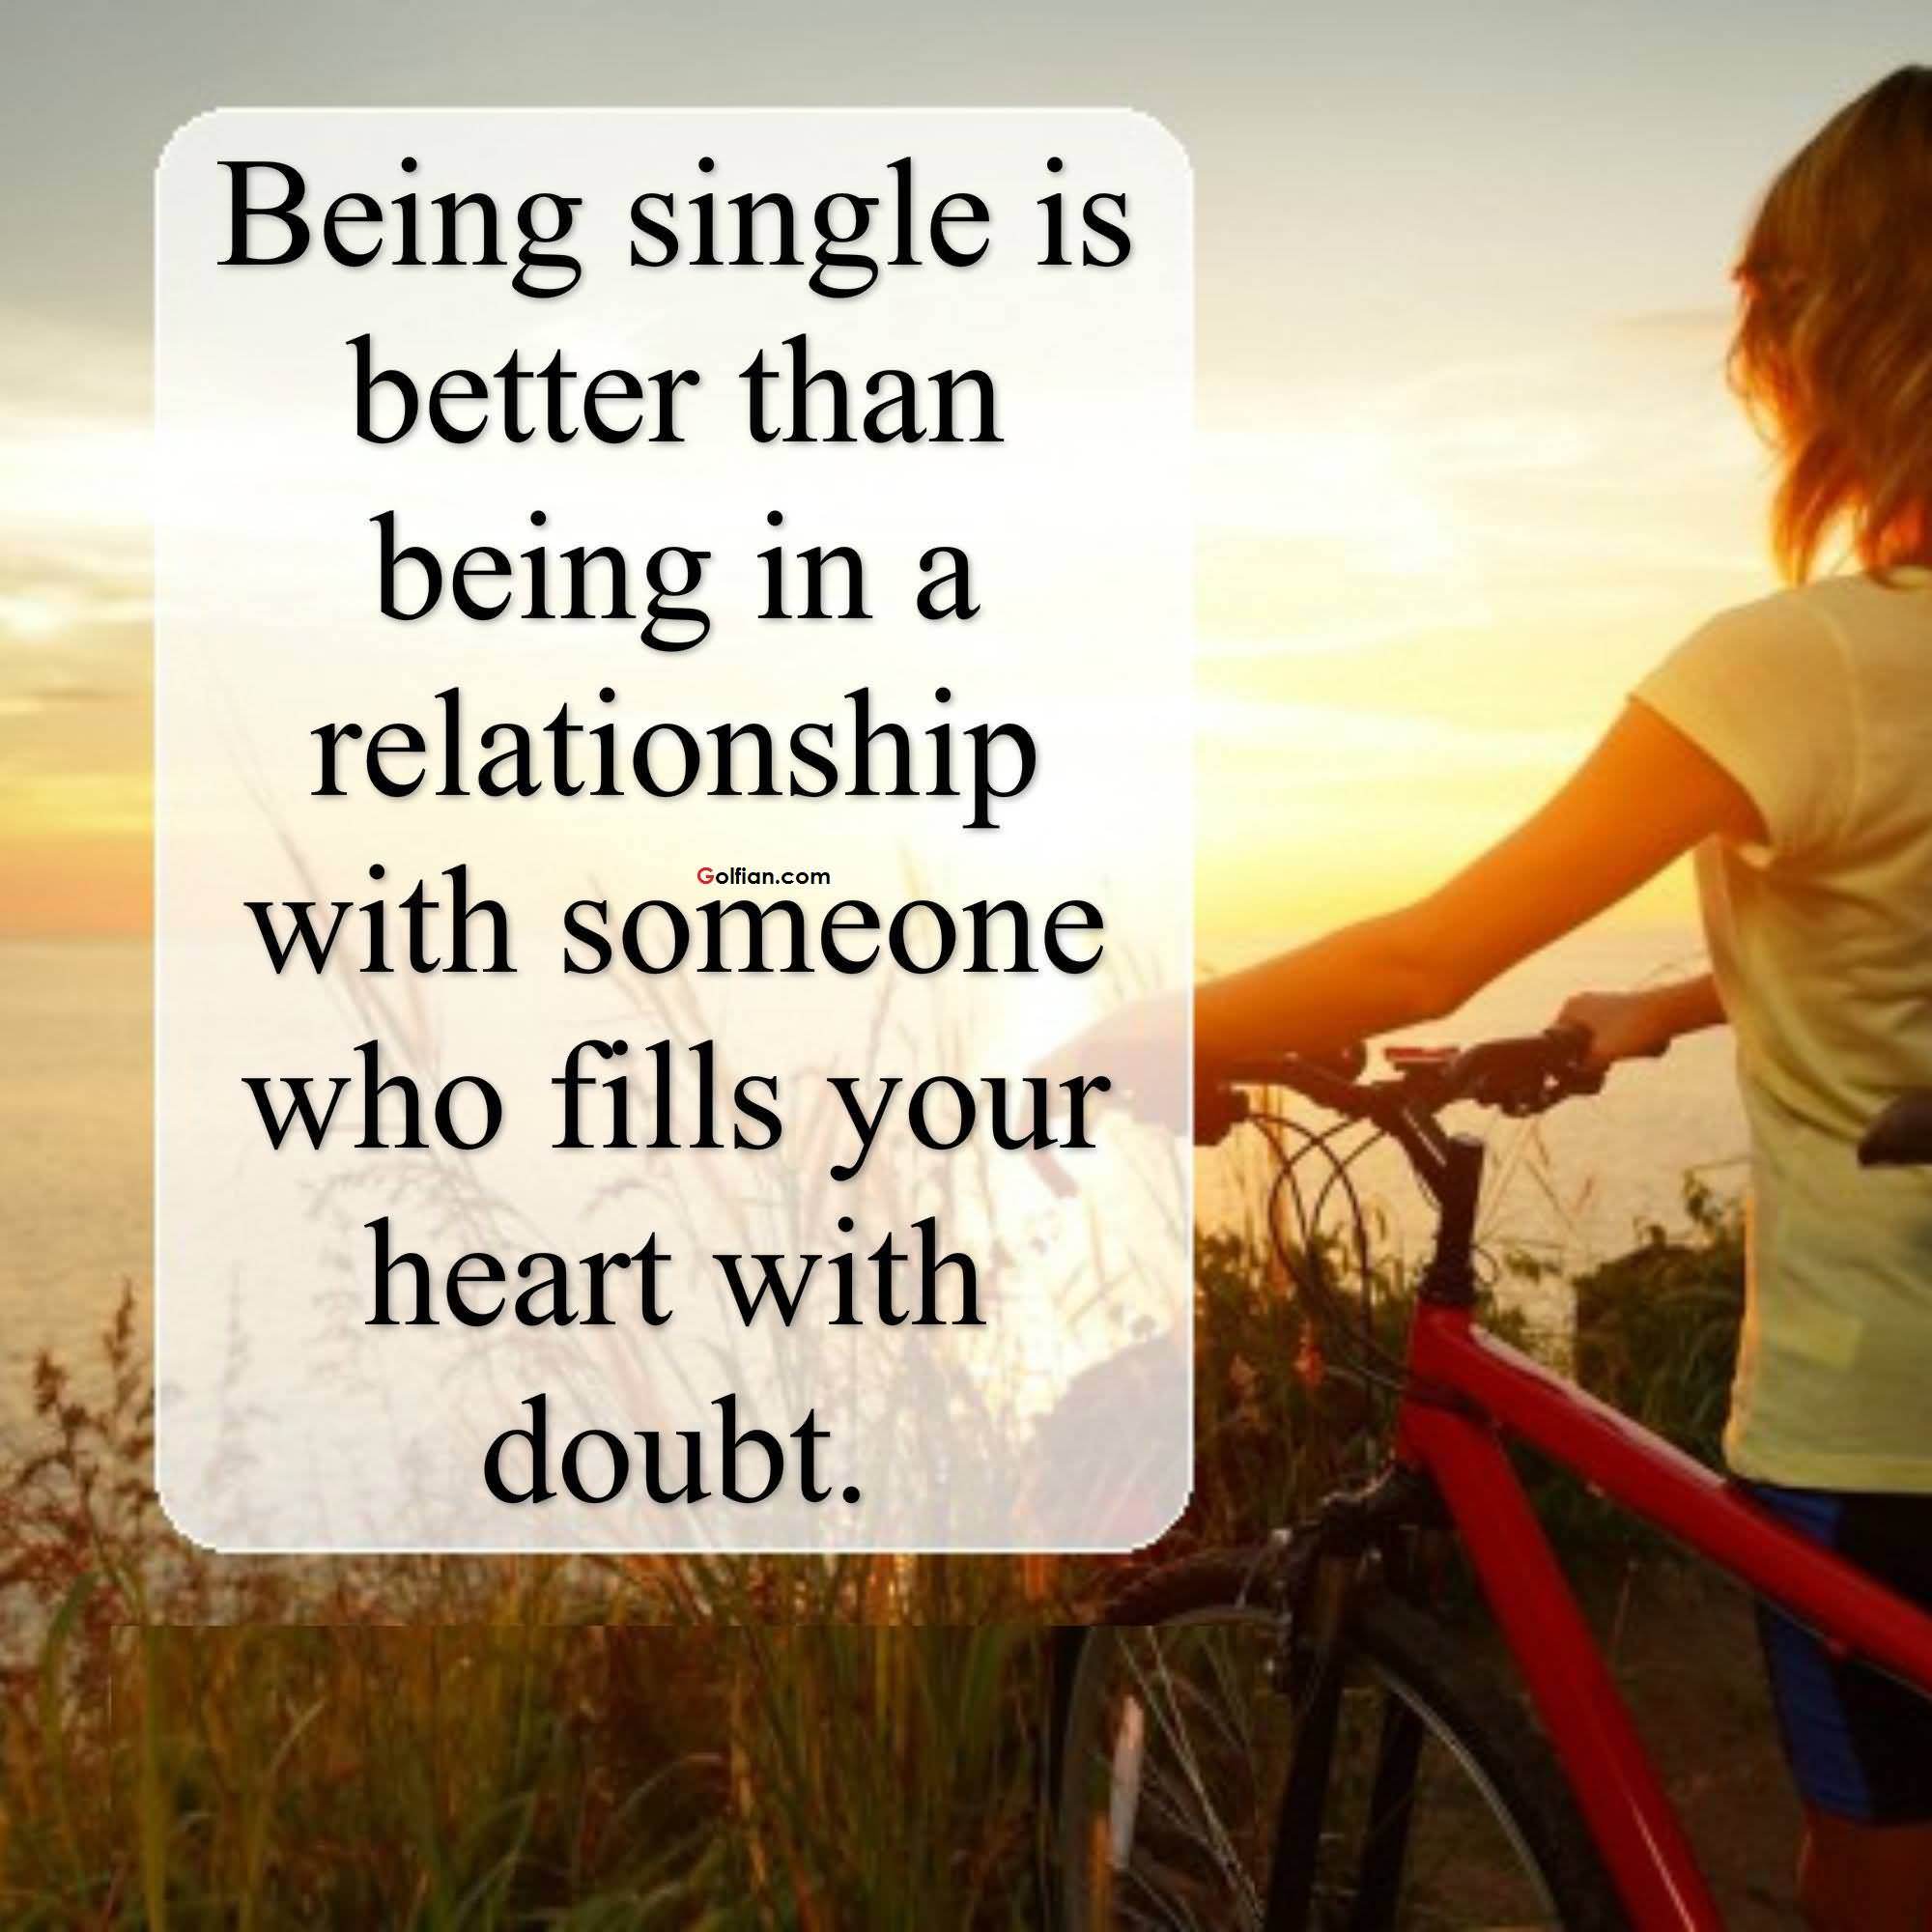 Quotes About Being Happy In A New Relationship: 50 Fiery Single Quotes To Help You Enjoy Your Status